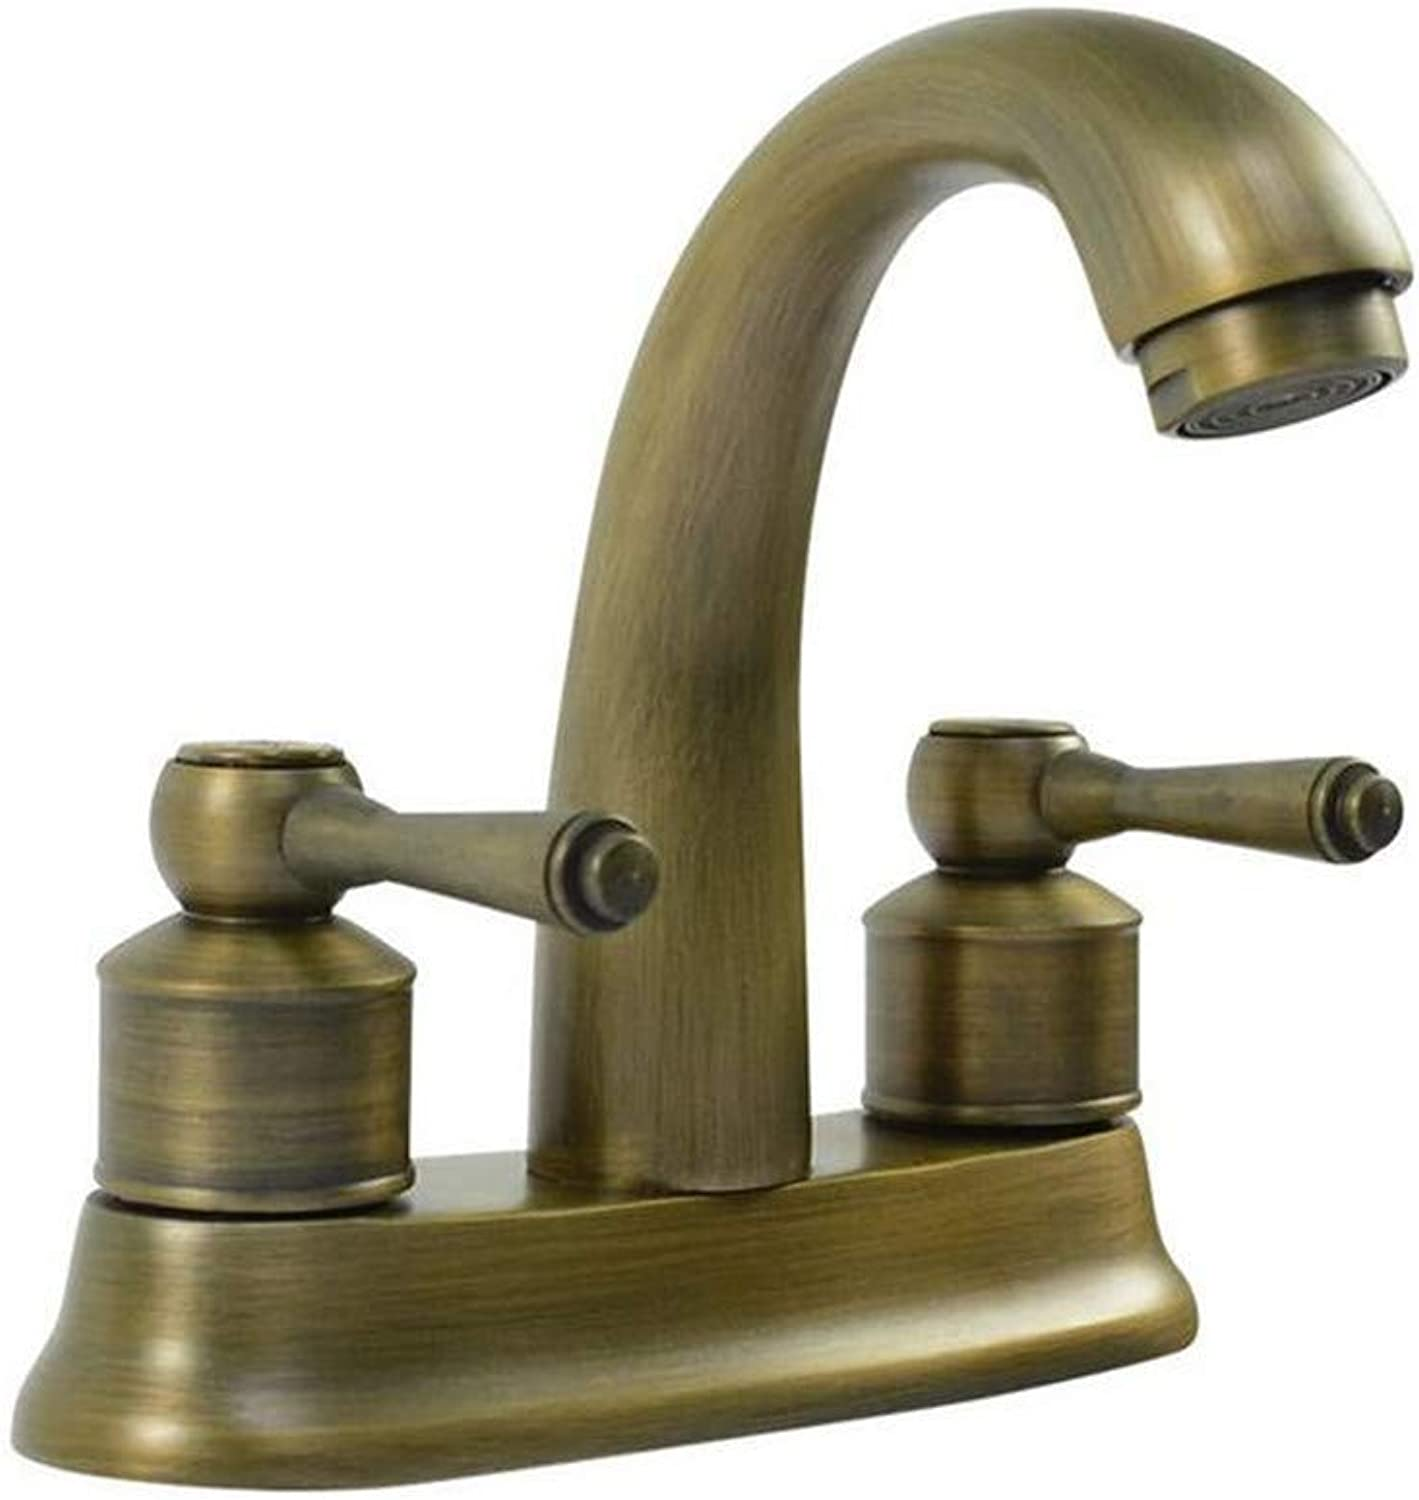 Basin Double Hole hot and Cold Water Antique Hand wash Basin Toilet Bathroom Basin Mixing Faucet